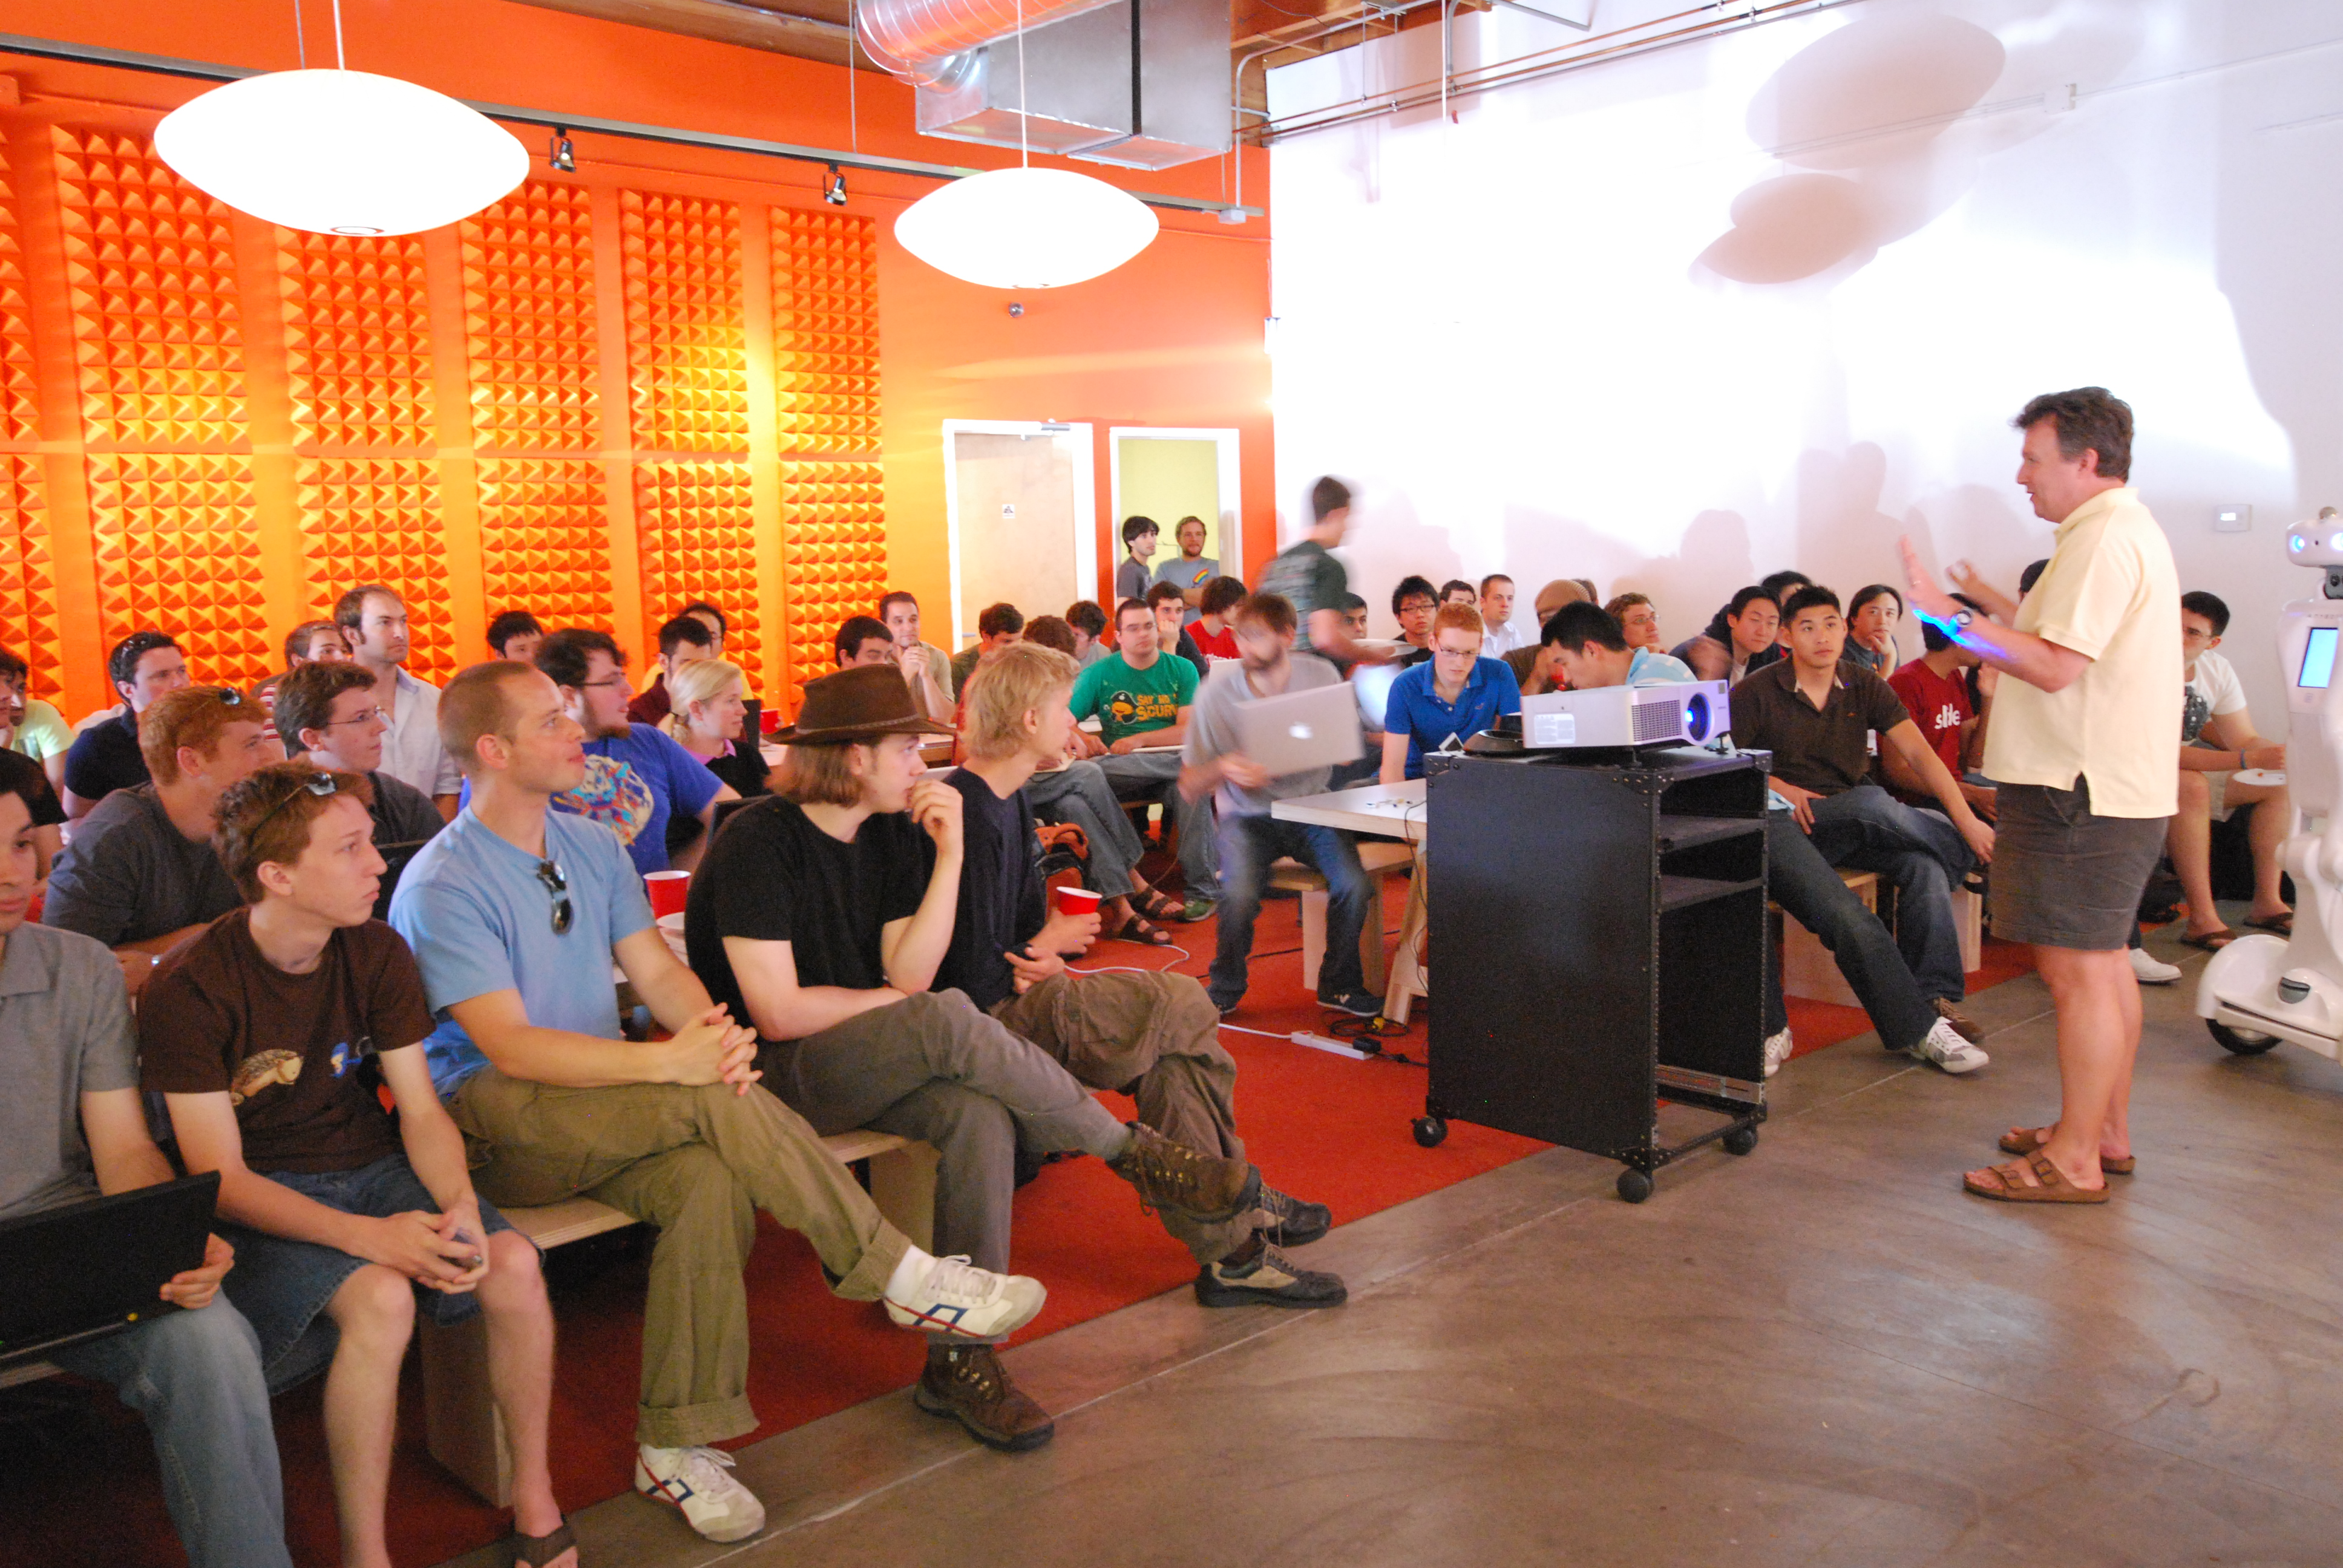 Software Incubator Y Combinator To Begin Funding Hardware Startups